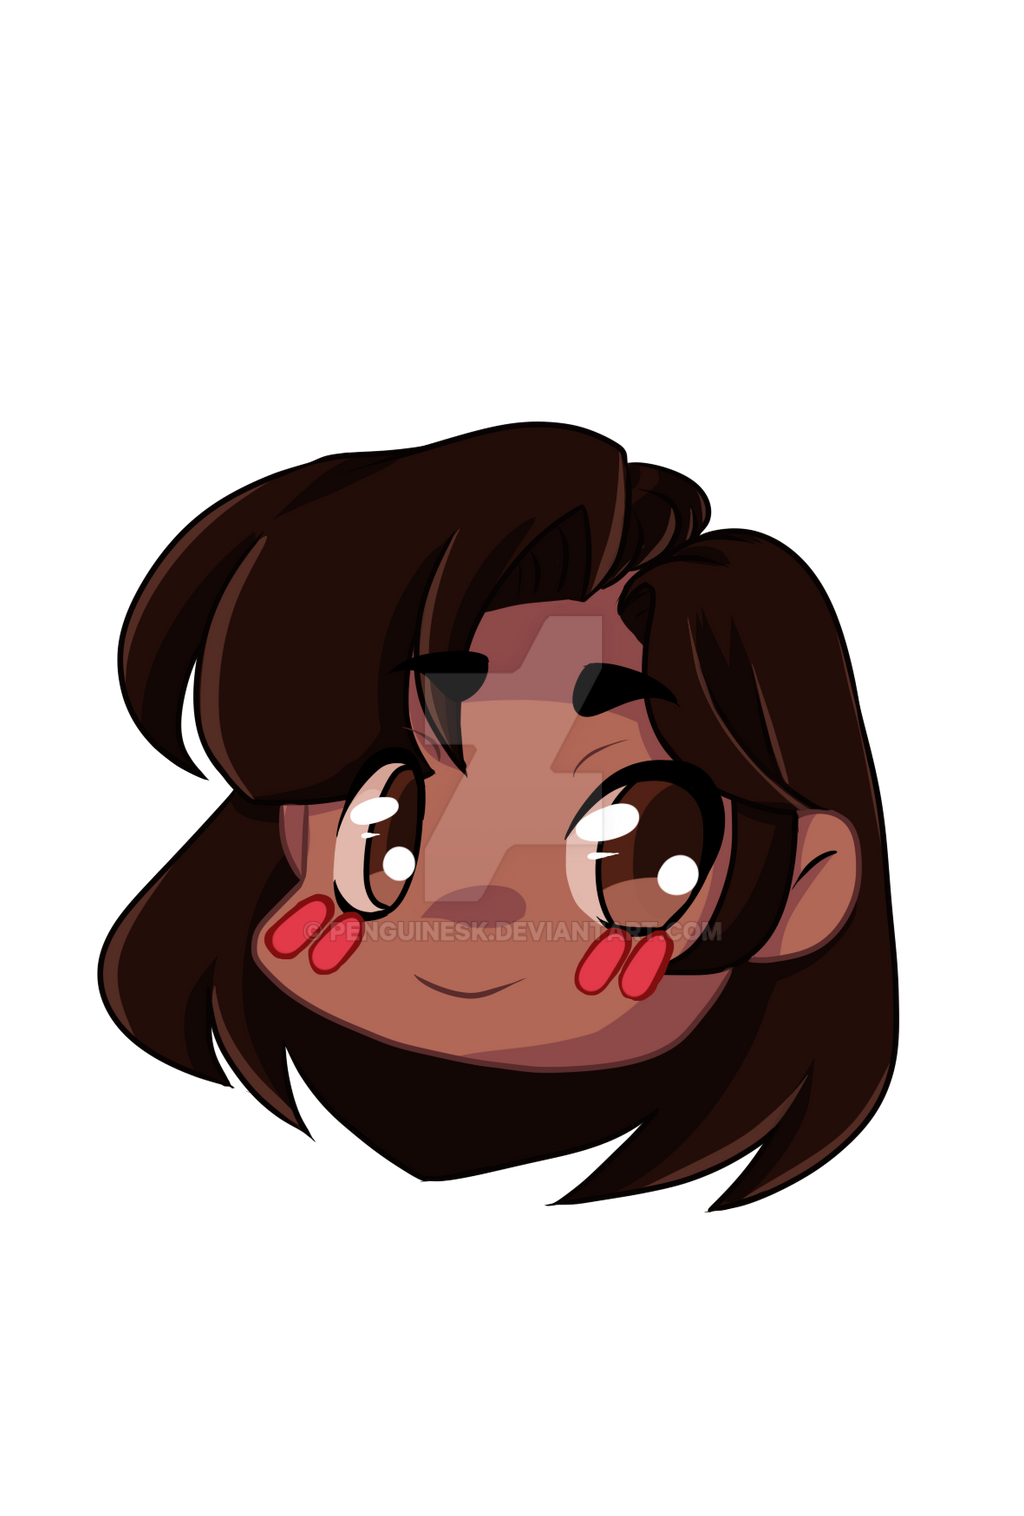 2nd Channel Icon Art by PenguinEsk